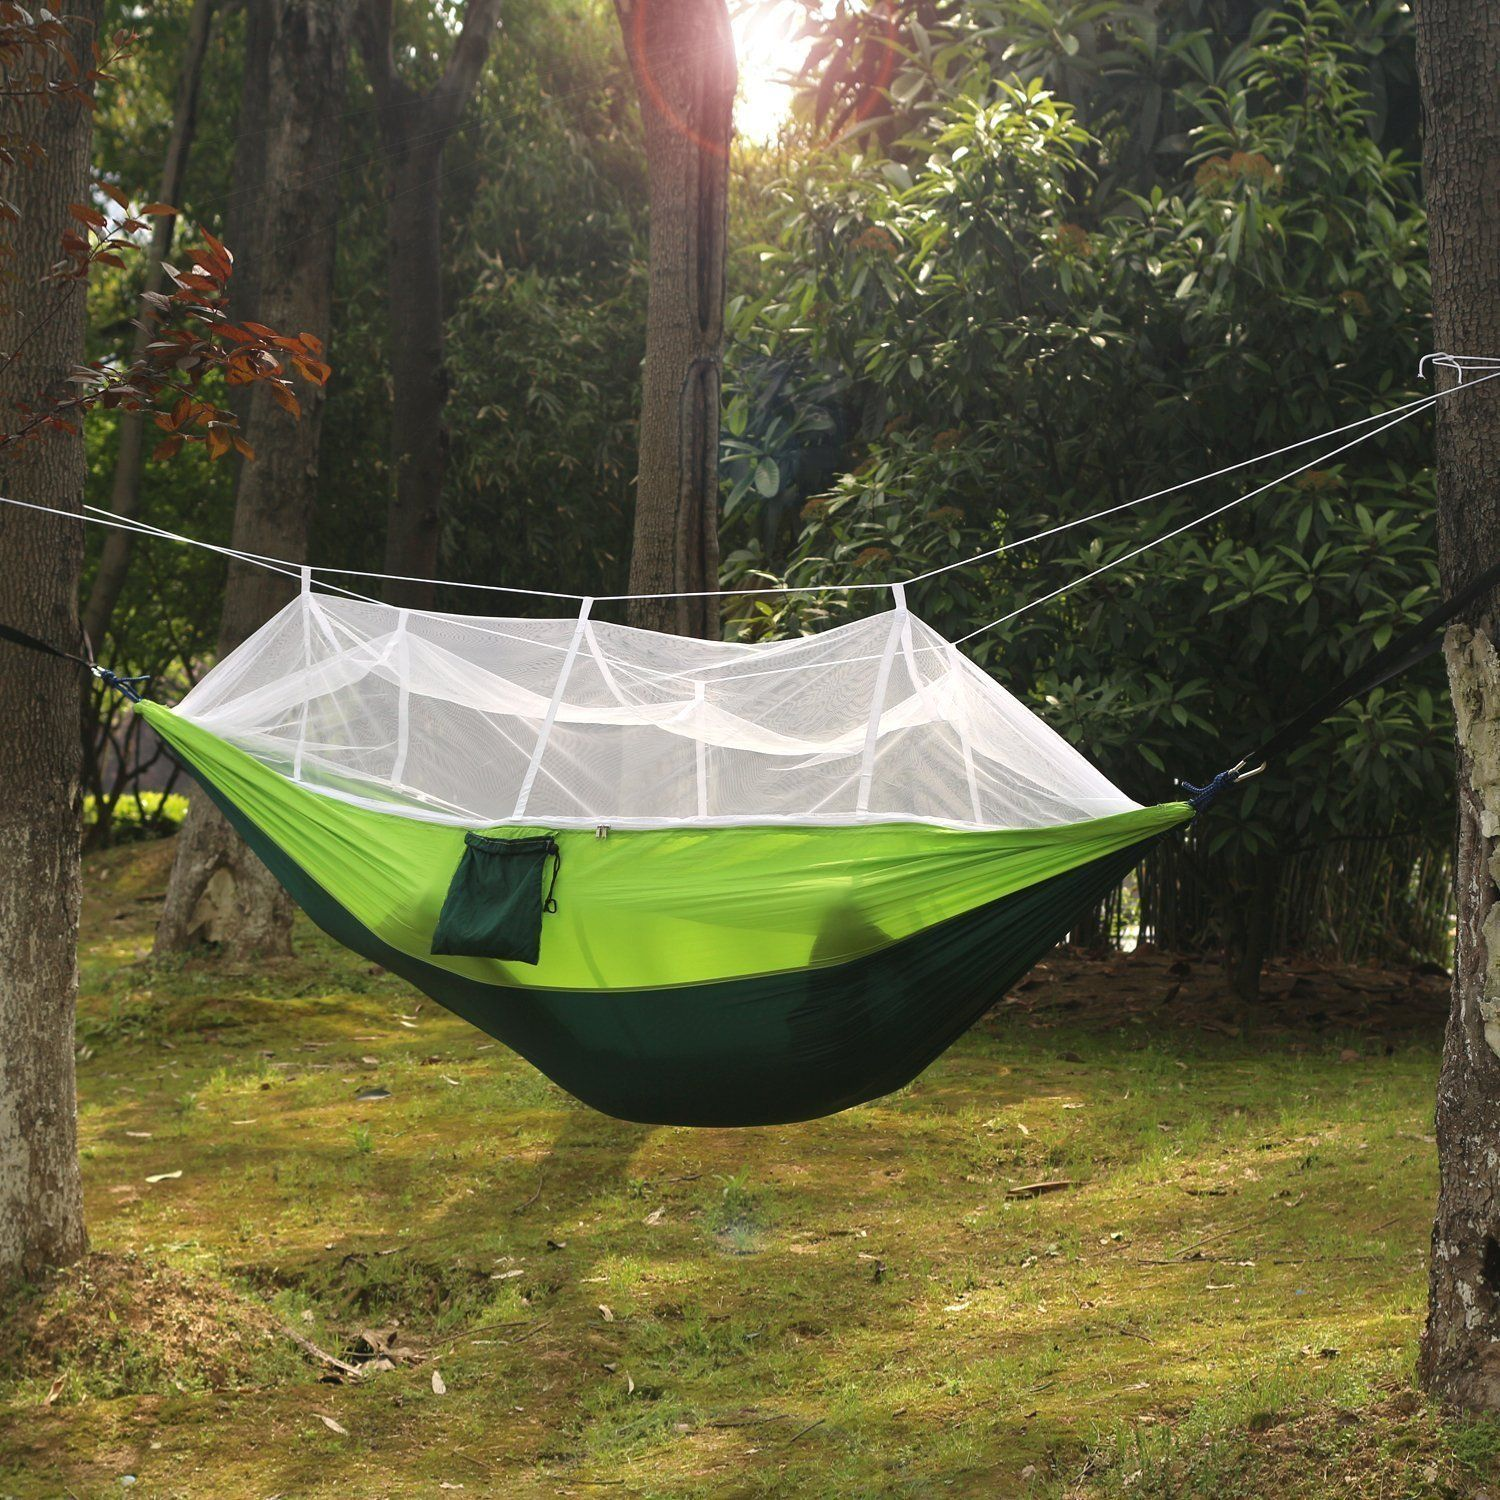 Carryon hammock mosquito net hammocknylon fabric travel portable